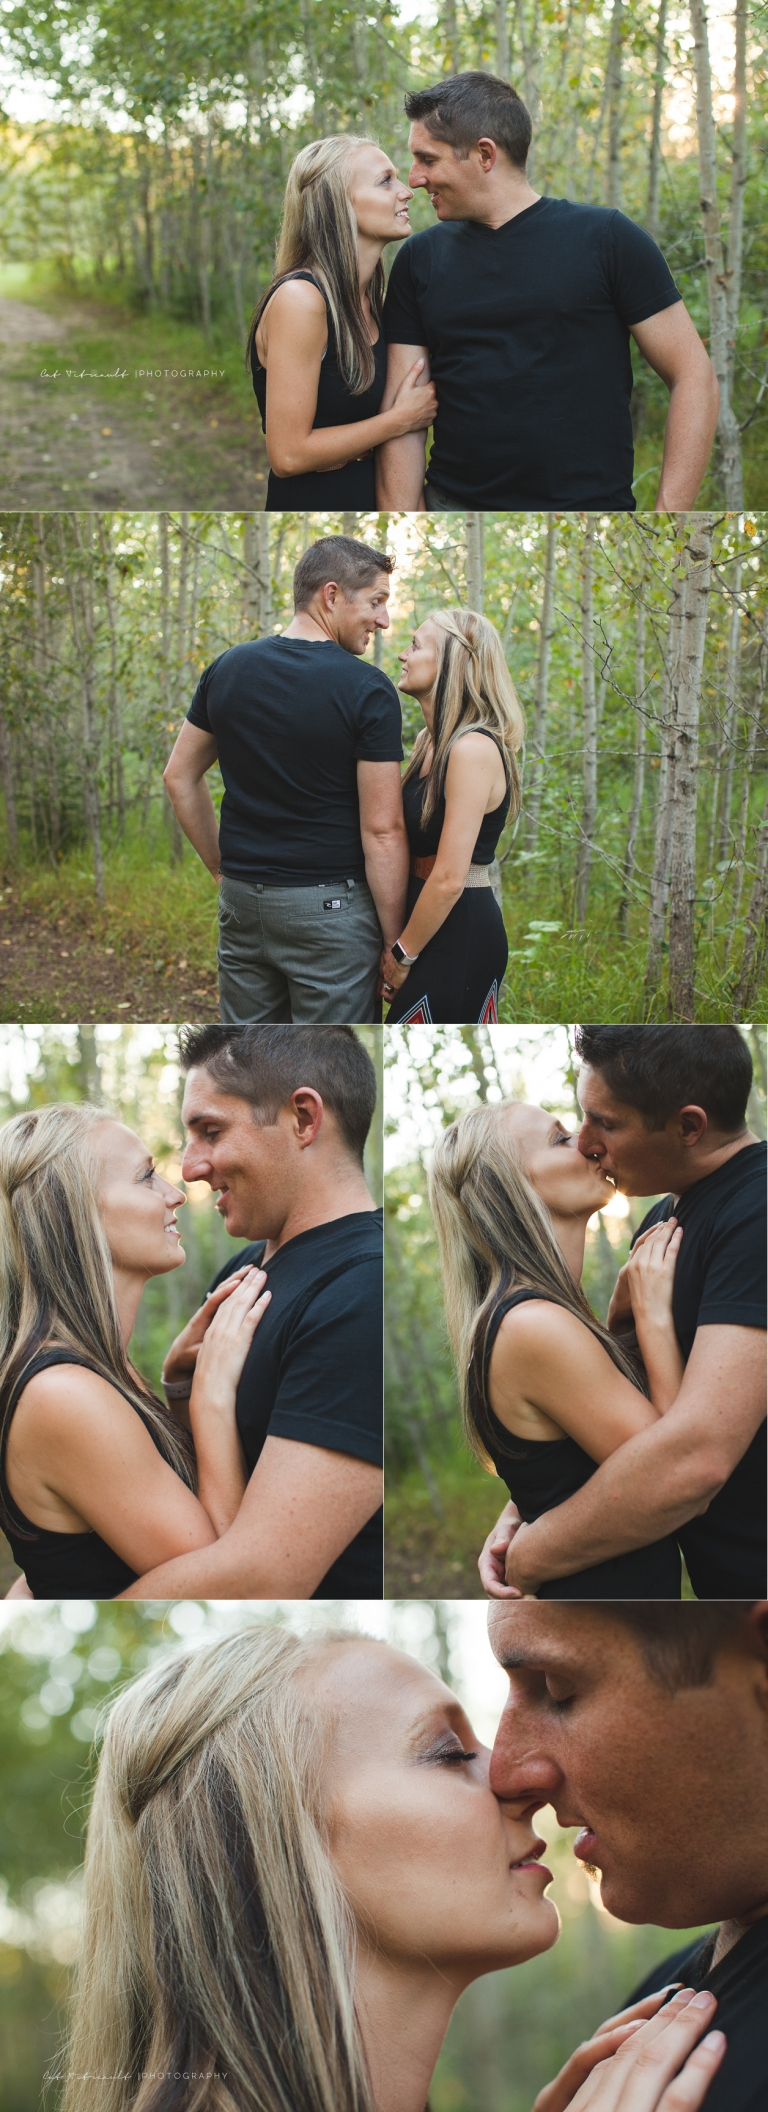 engagementphotos1